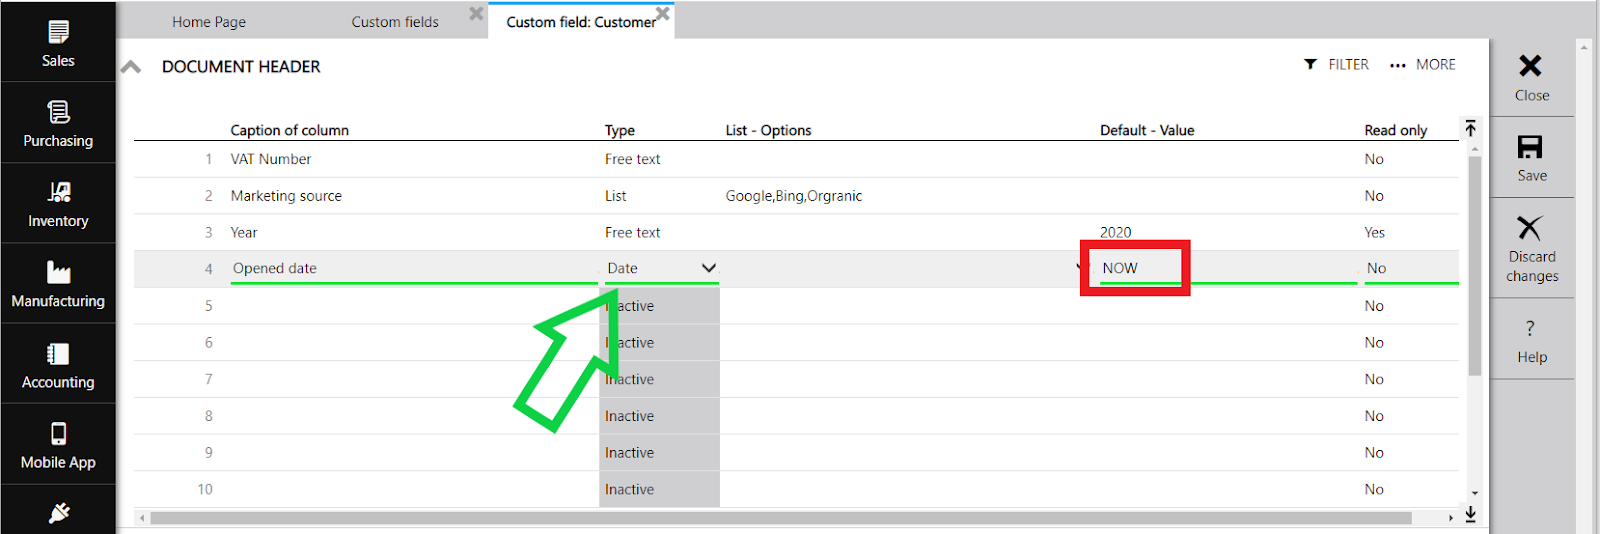 custom field default value now